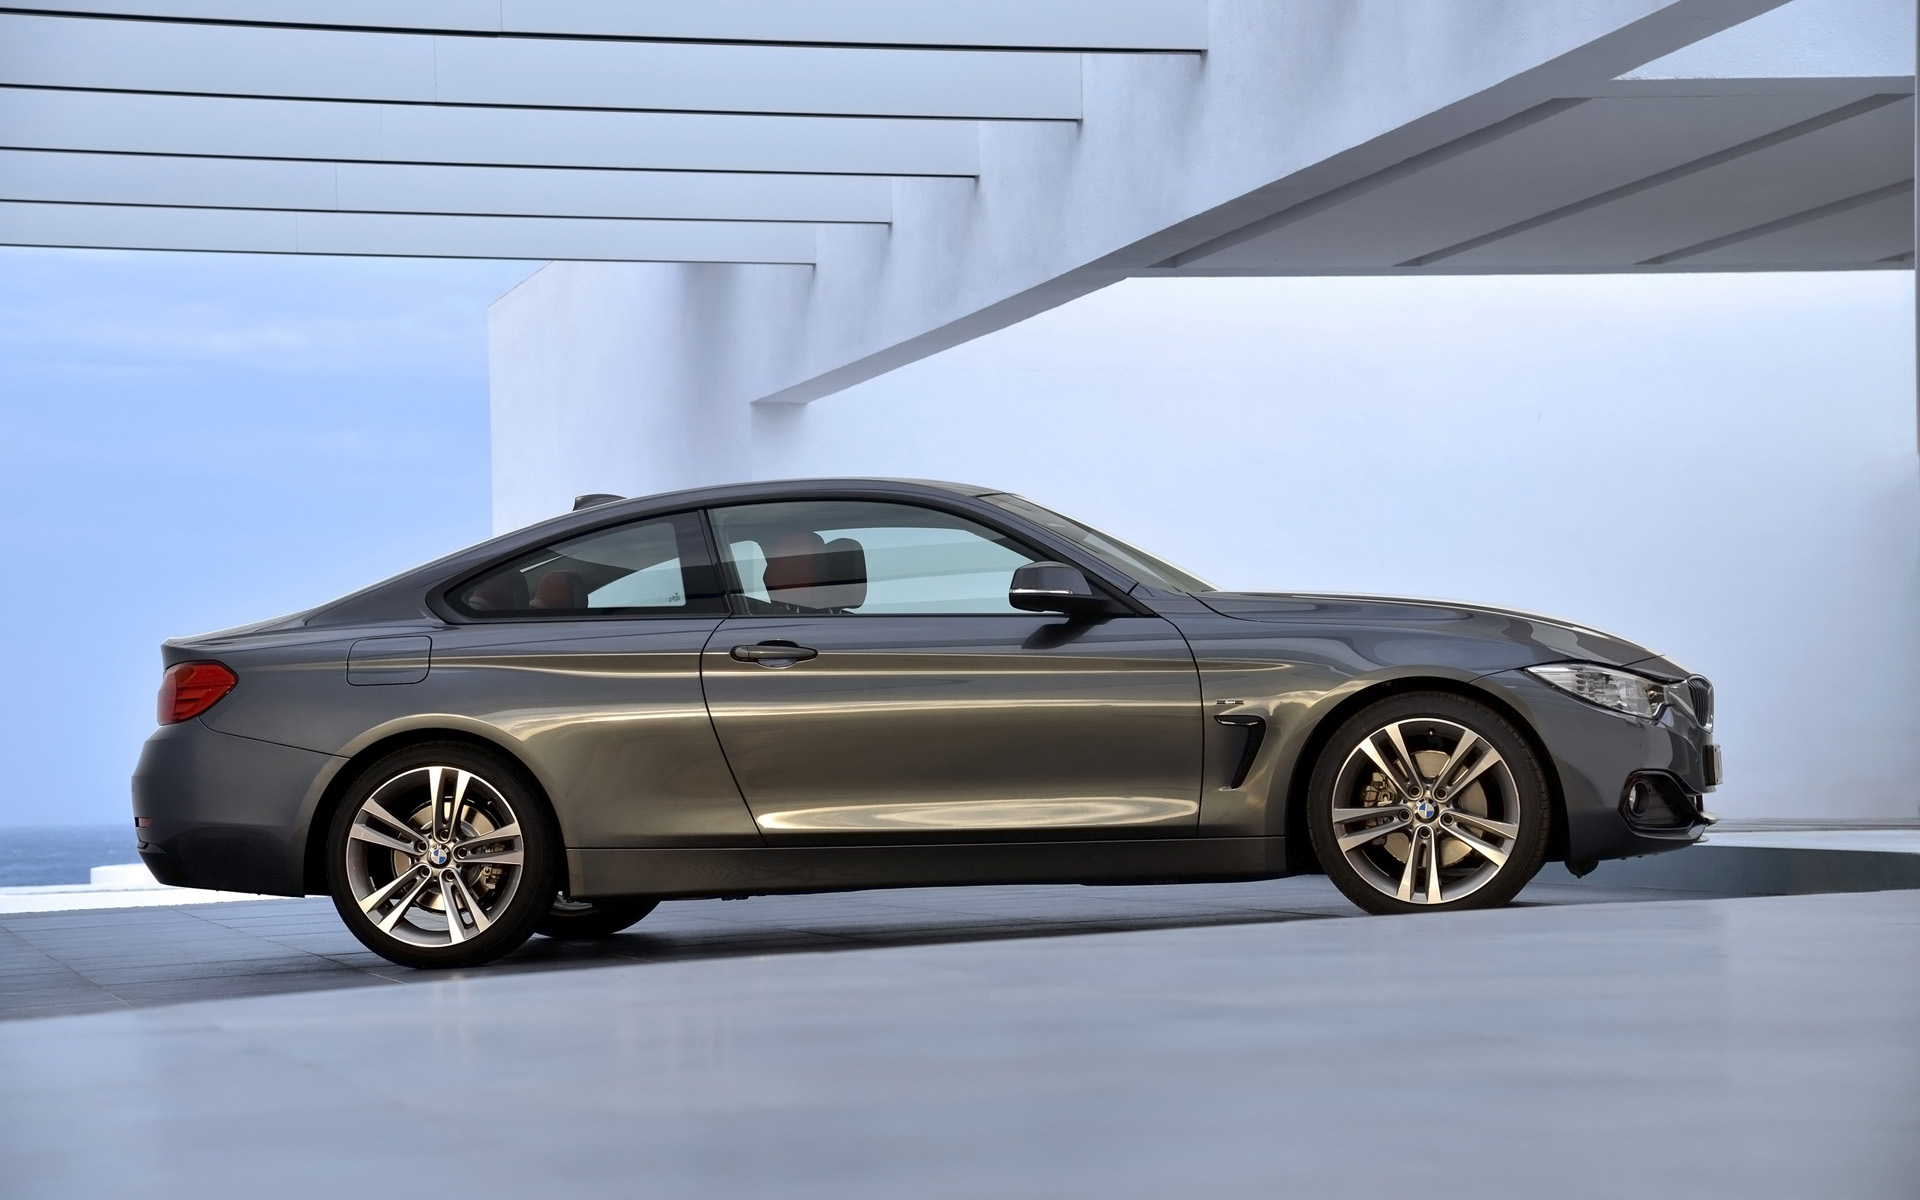 BMW 4 series 418d 2013 photo - 6